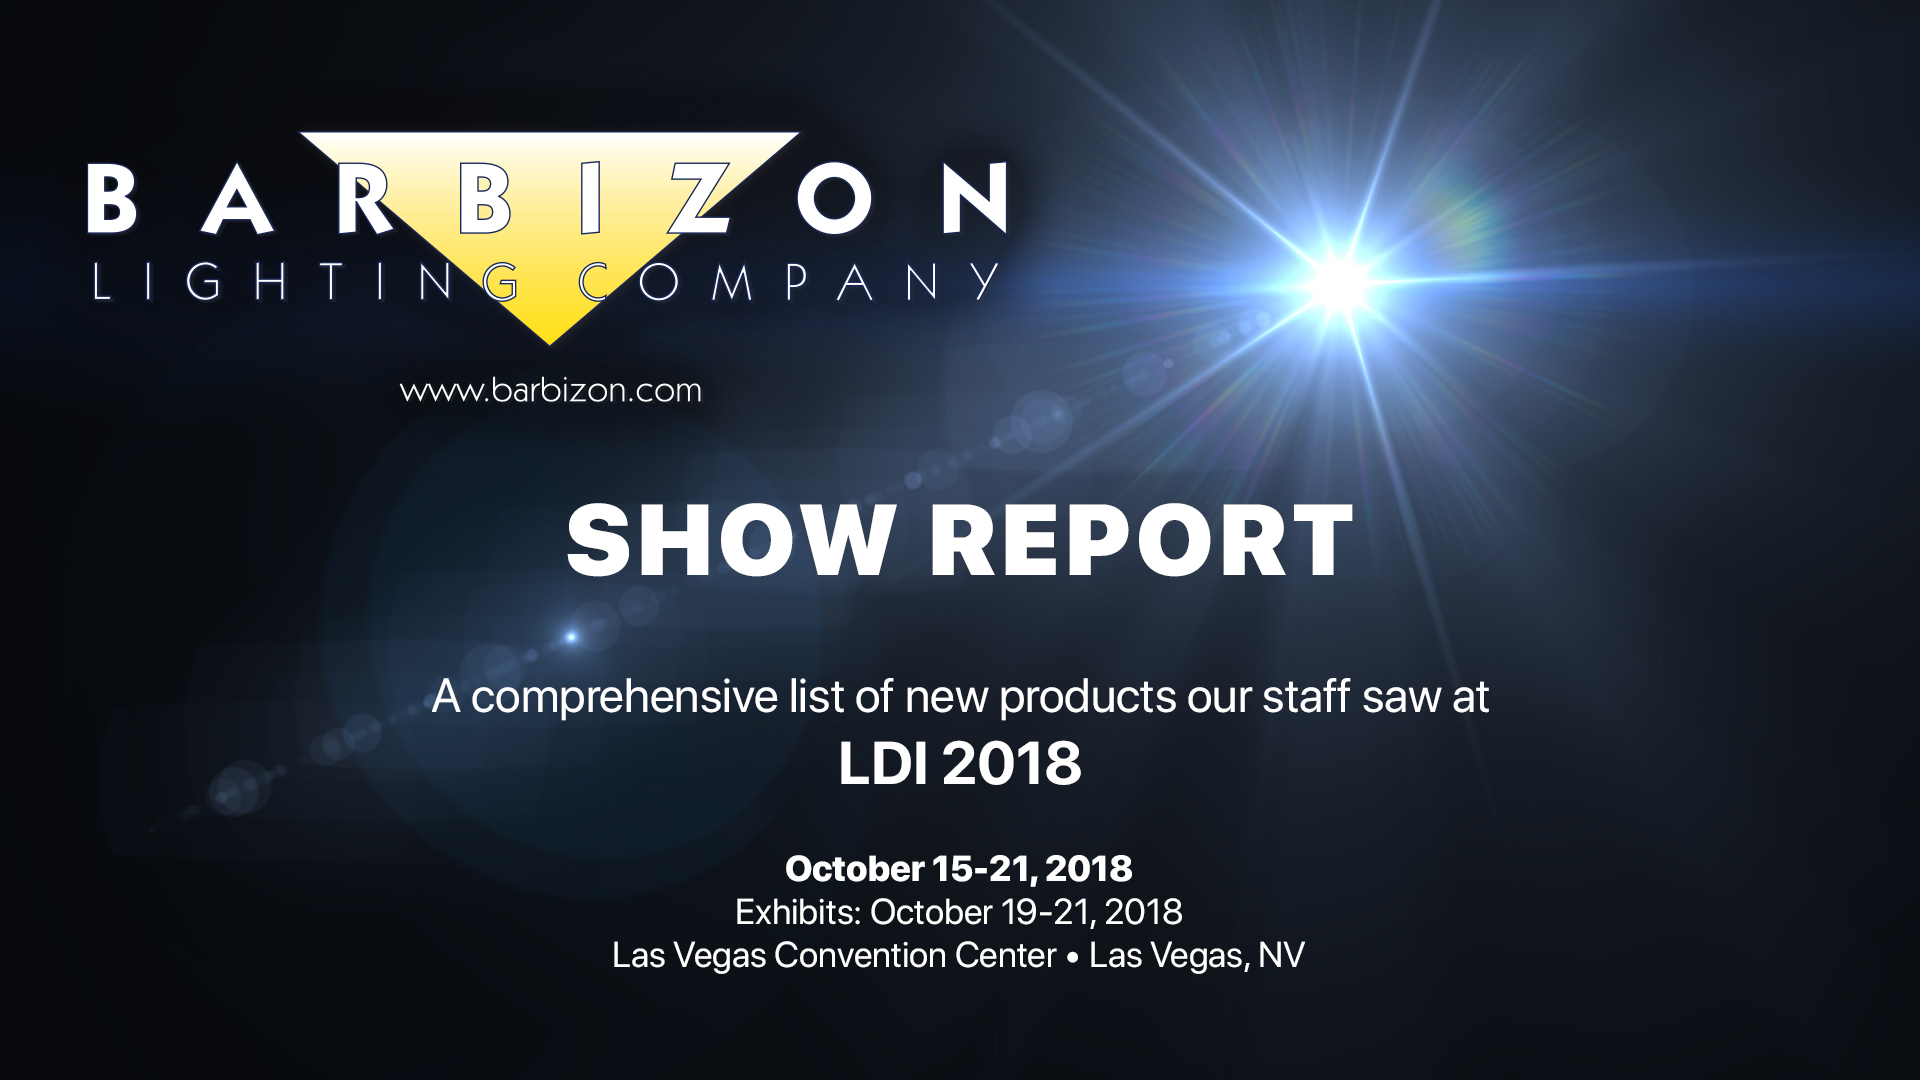 Category Ldi 2018 Barbizon Lighting Company Is A Little Eyecandy Circuit Which Continuously Cycles An Rgb Led Show Report